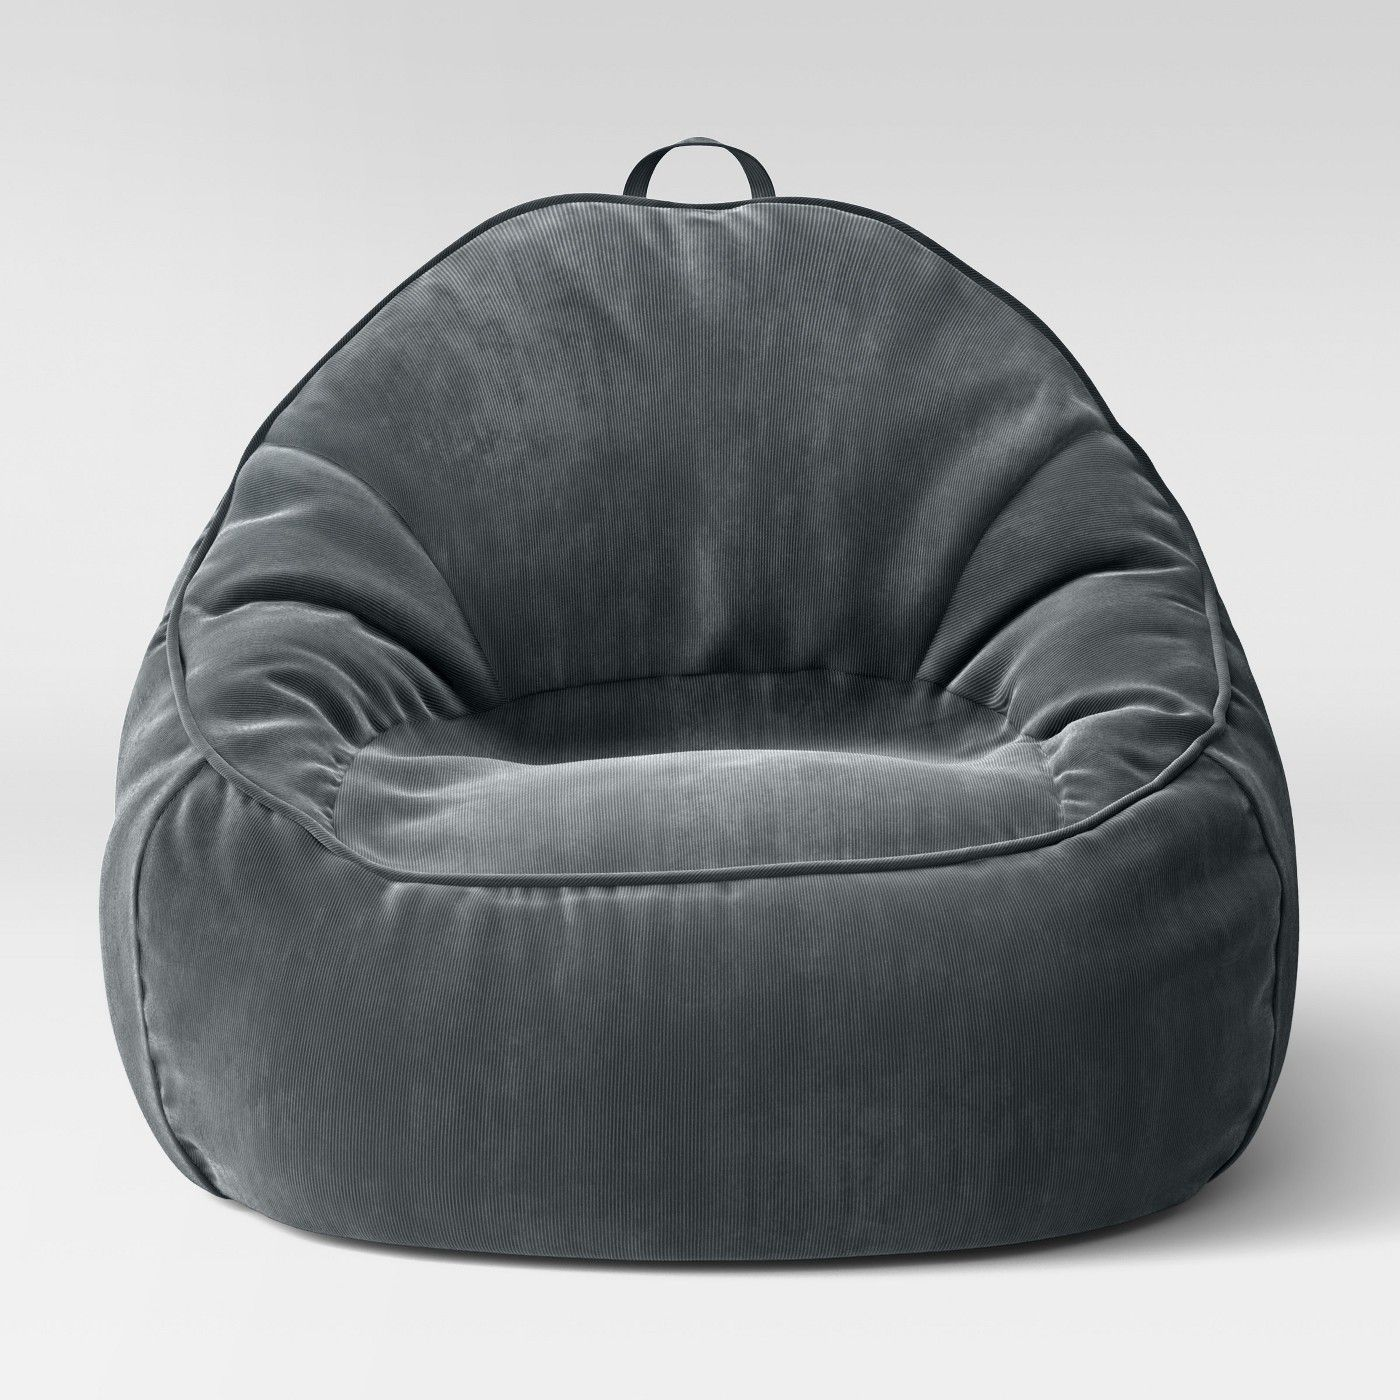 bean bag chairs cheap 4 gaming 7 best of 2019